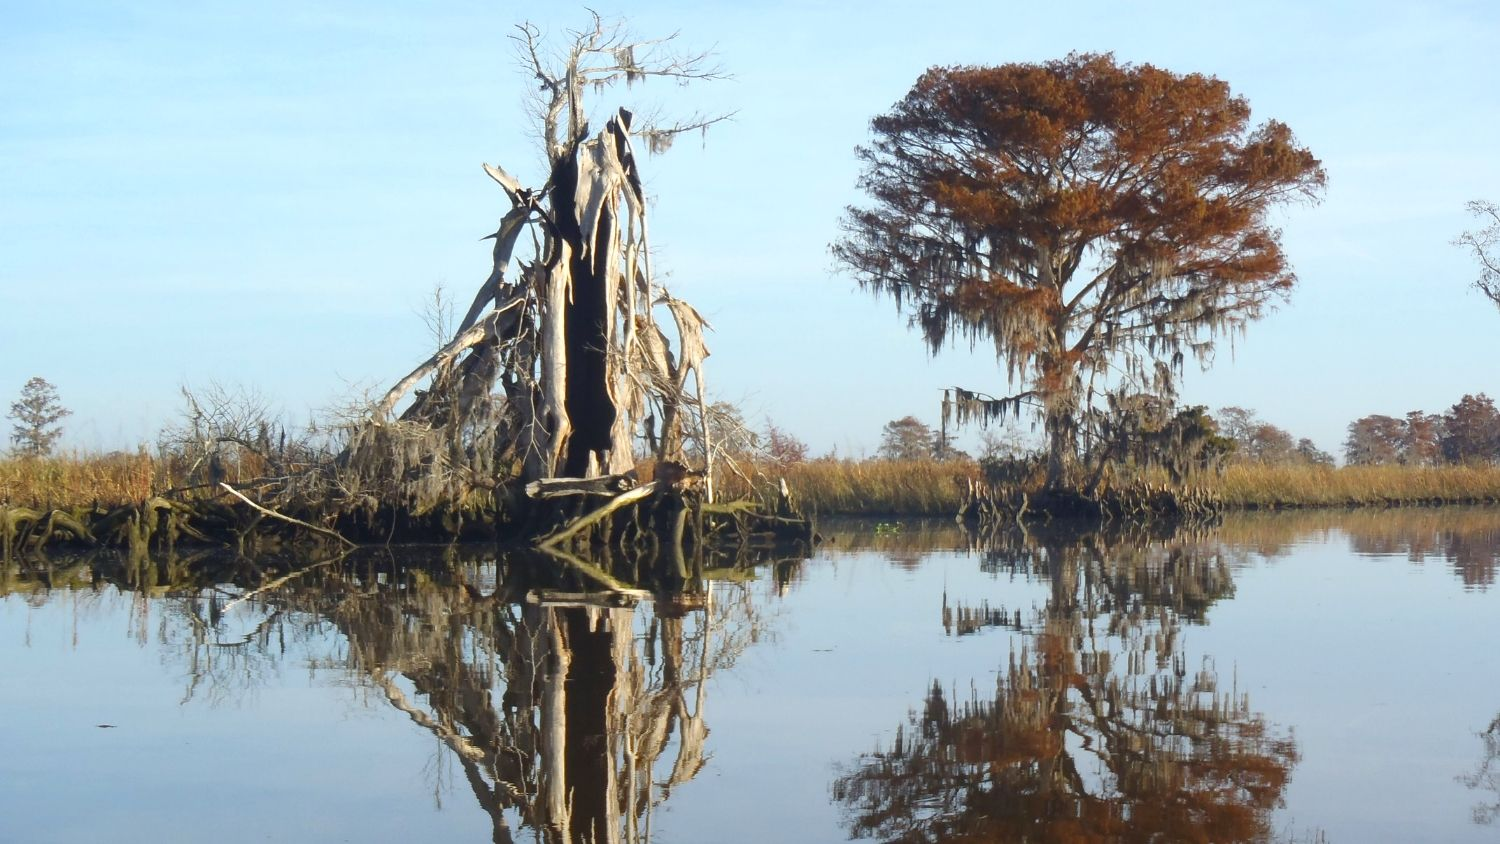 Ghost forests develop as species die-off from soil salinity